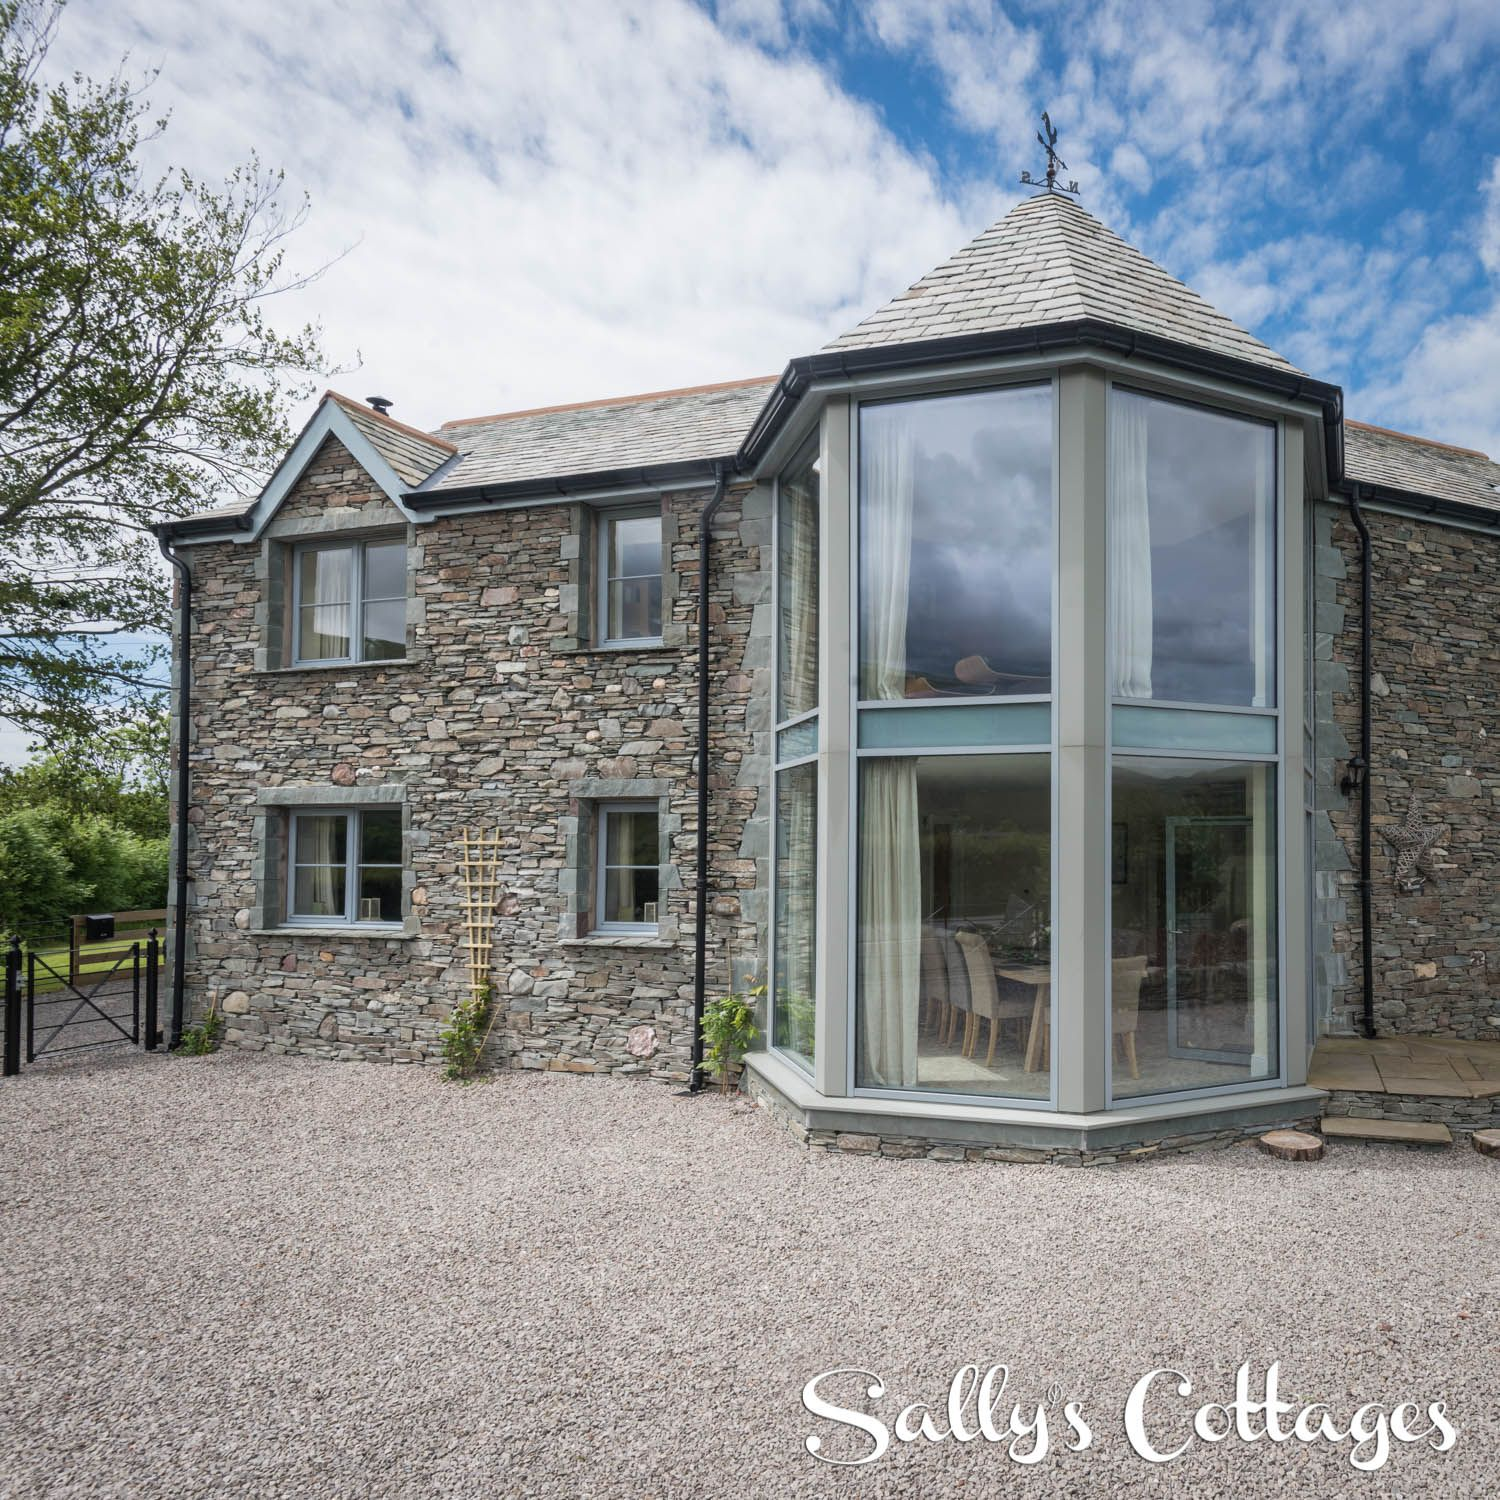 Lily Hall Is A Luxury Holiday Cottage In Ennerdale Sleeping 7 8 With 2 Pets Welcome Luxury Holiday Cottages Cottage Pretty House